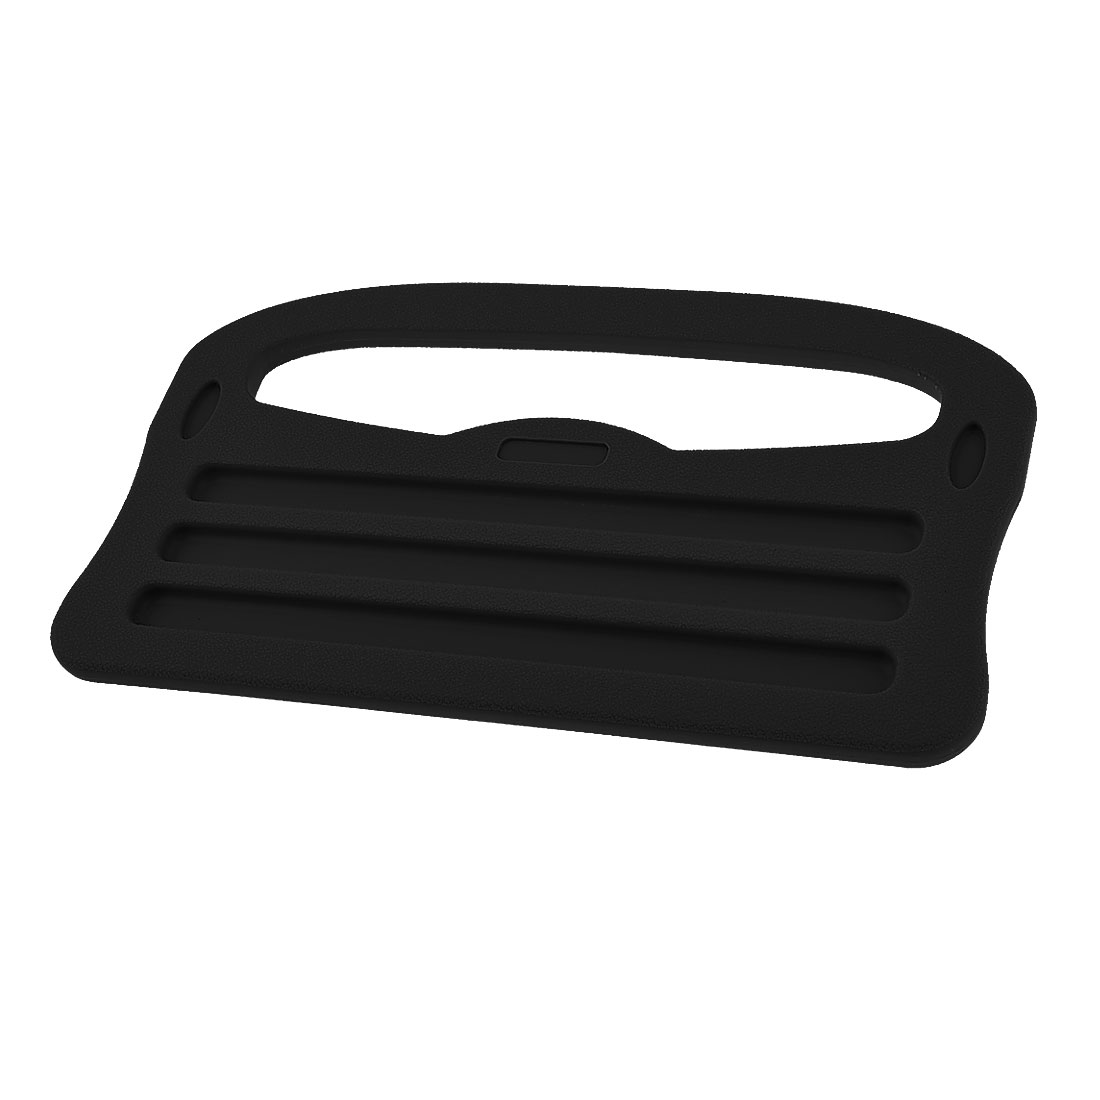 Car iPad Support Stand Dining Food Table Steering Wheel Drink Holder Tray Black